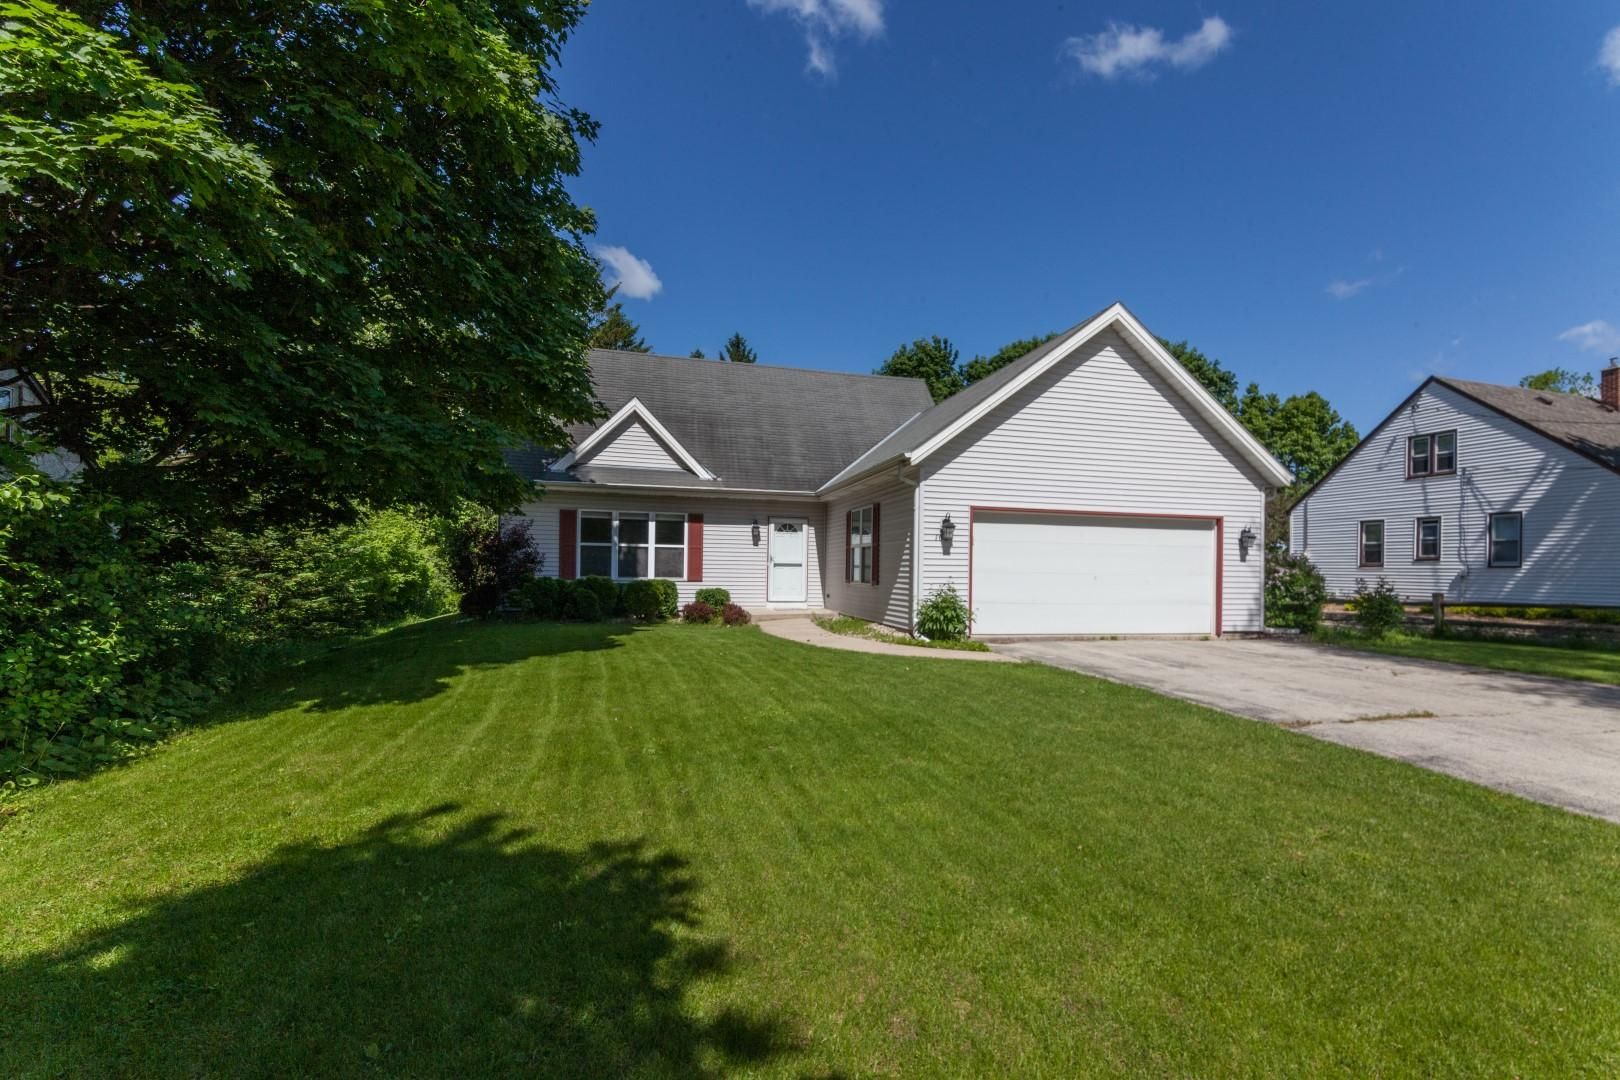 1034 Guthrie Rd, Waukesha, Wisconsin 53186, 3 Bedrooms Bedrooms, ,3 BathroomsBathrooms,Single-Family,For Sale,Guthrie Rd,1642048